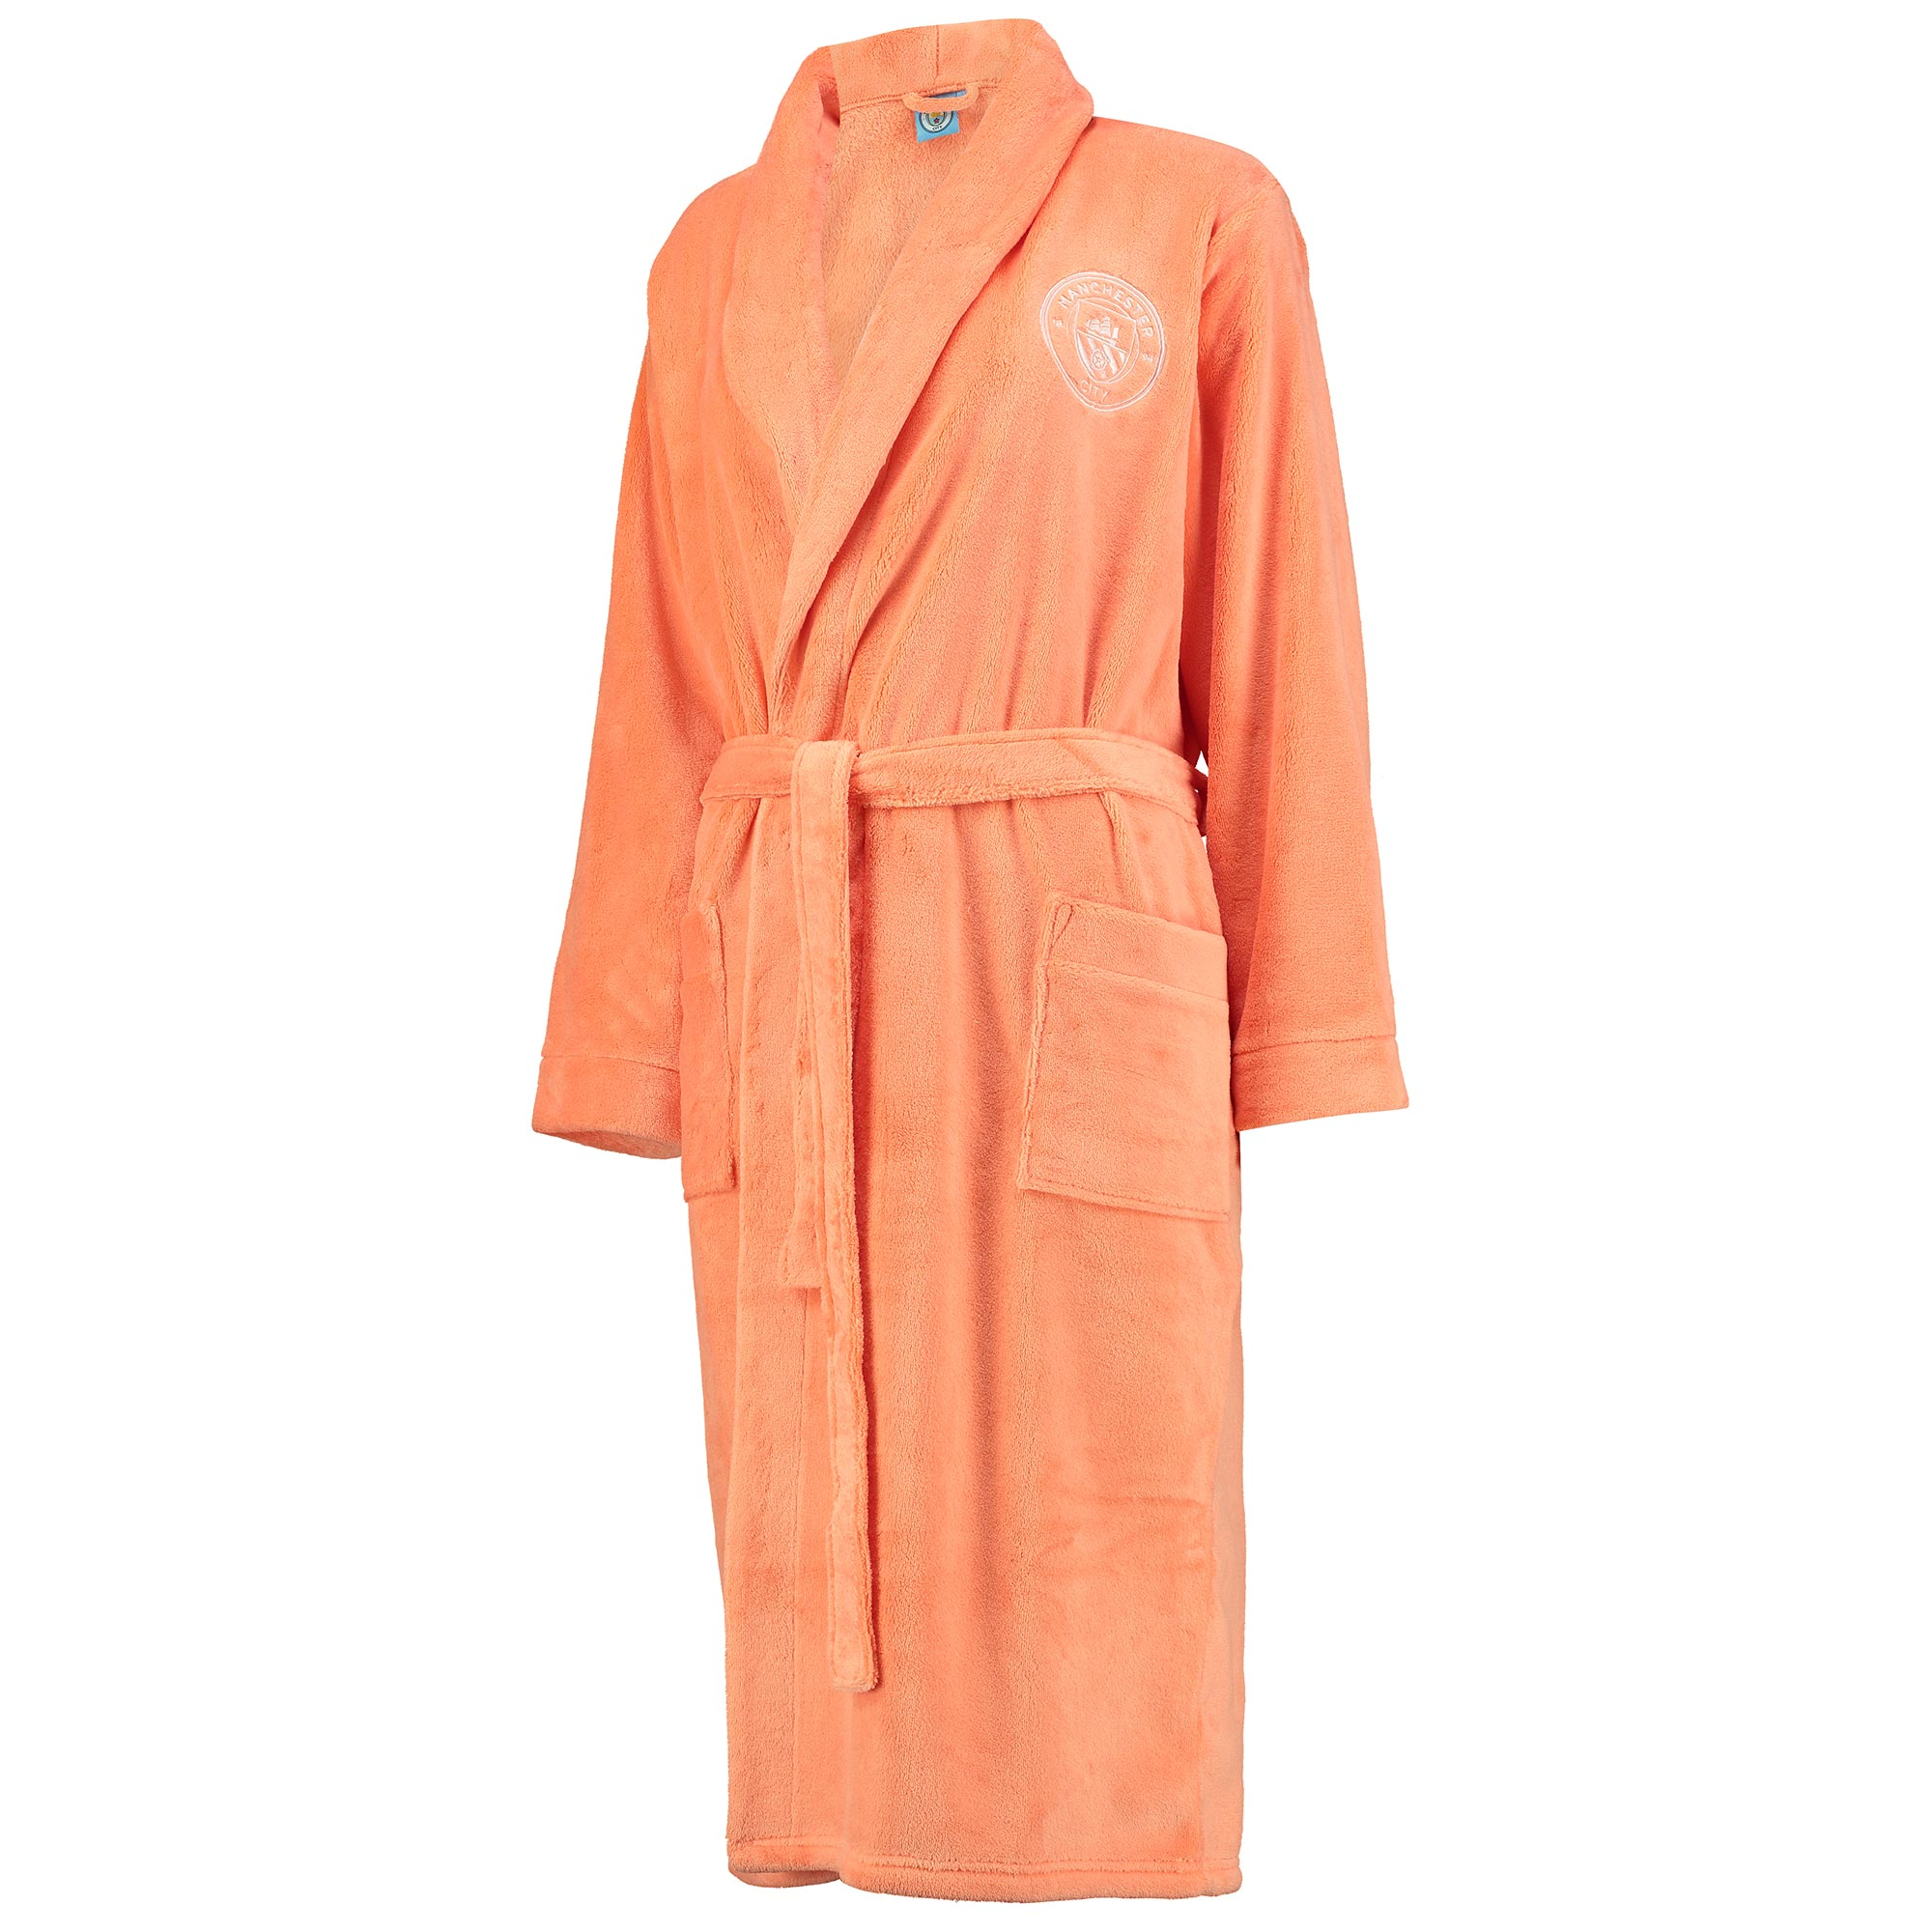 Manchester City Robe - Salmon Pink - Womens